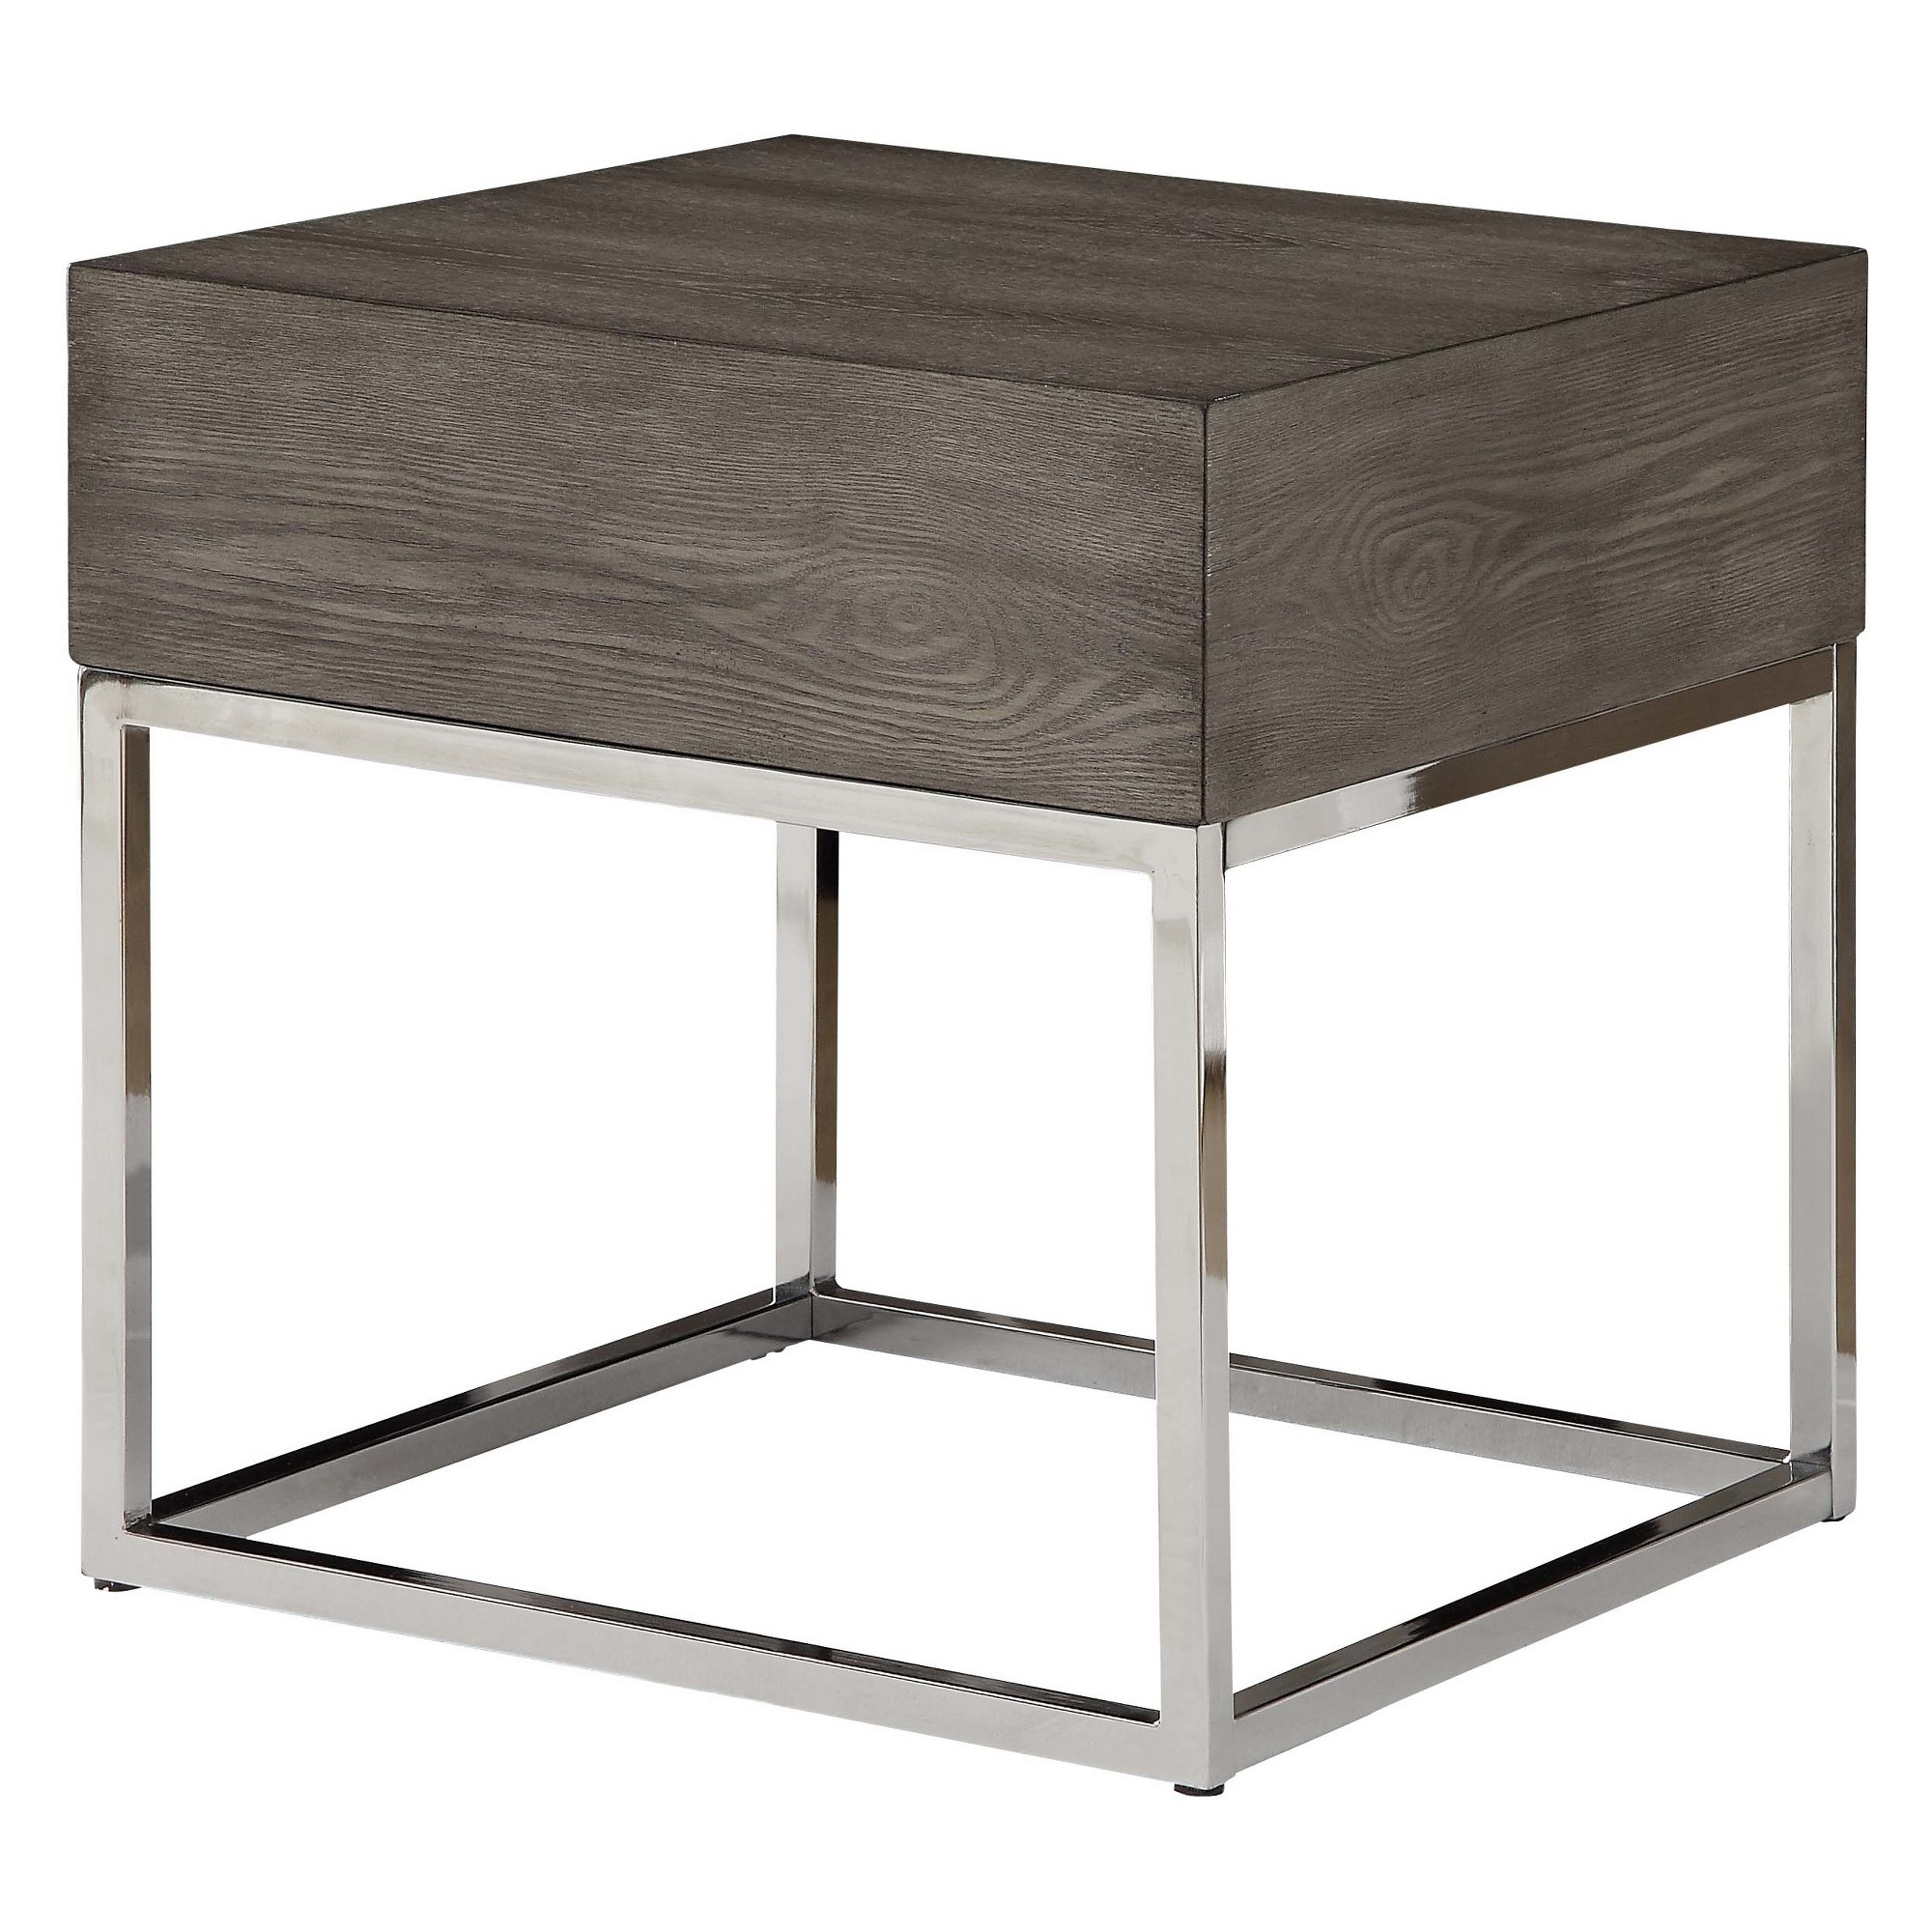 Acme Furniture Cecil II End Table Gray Oak/Chrome